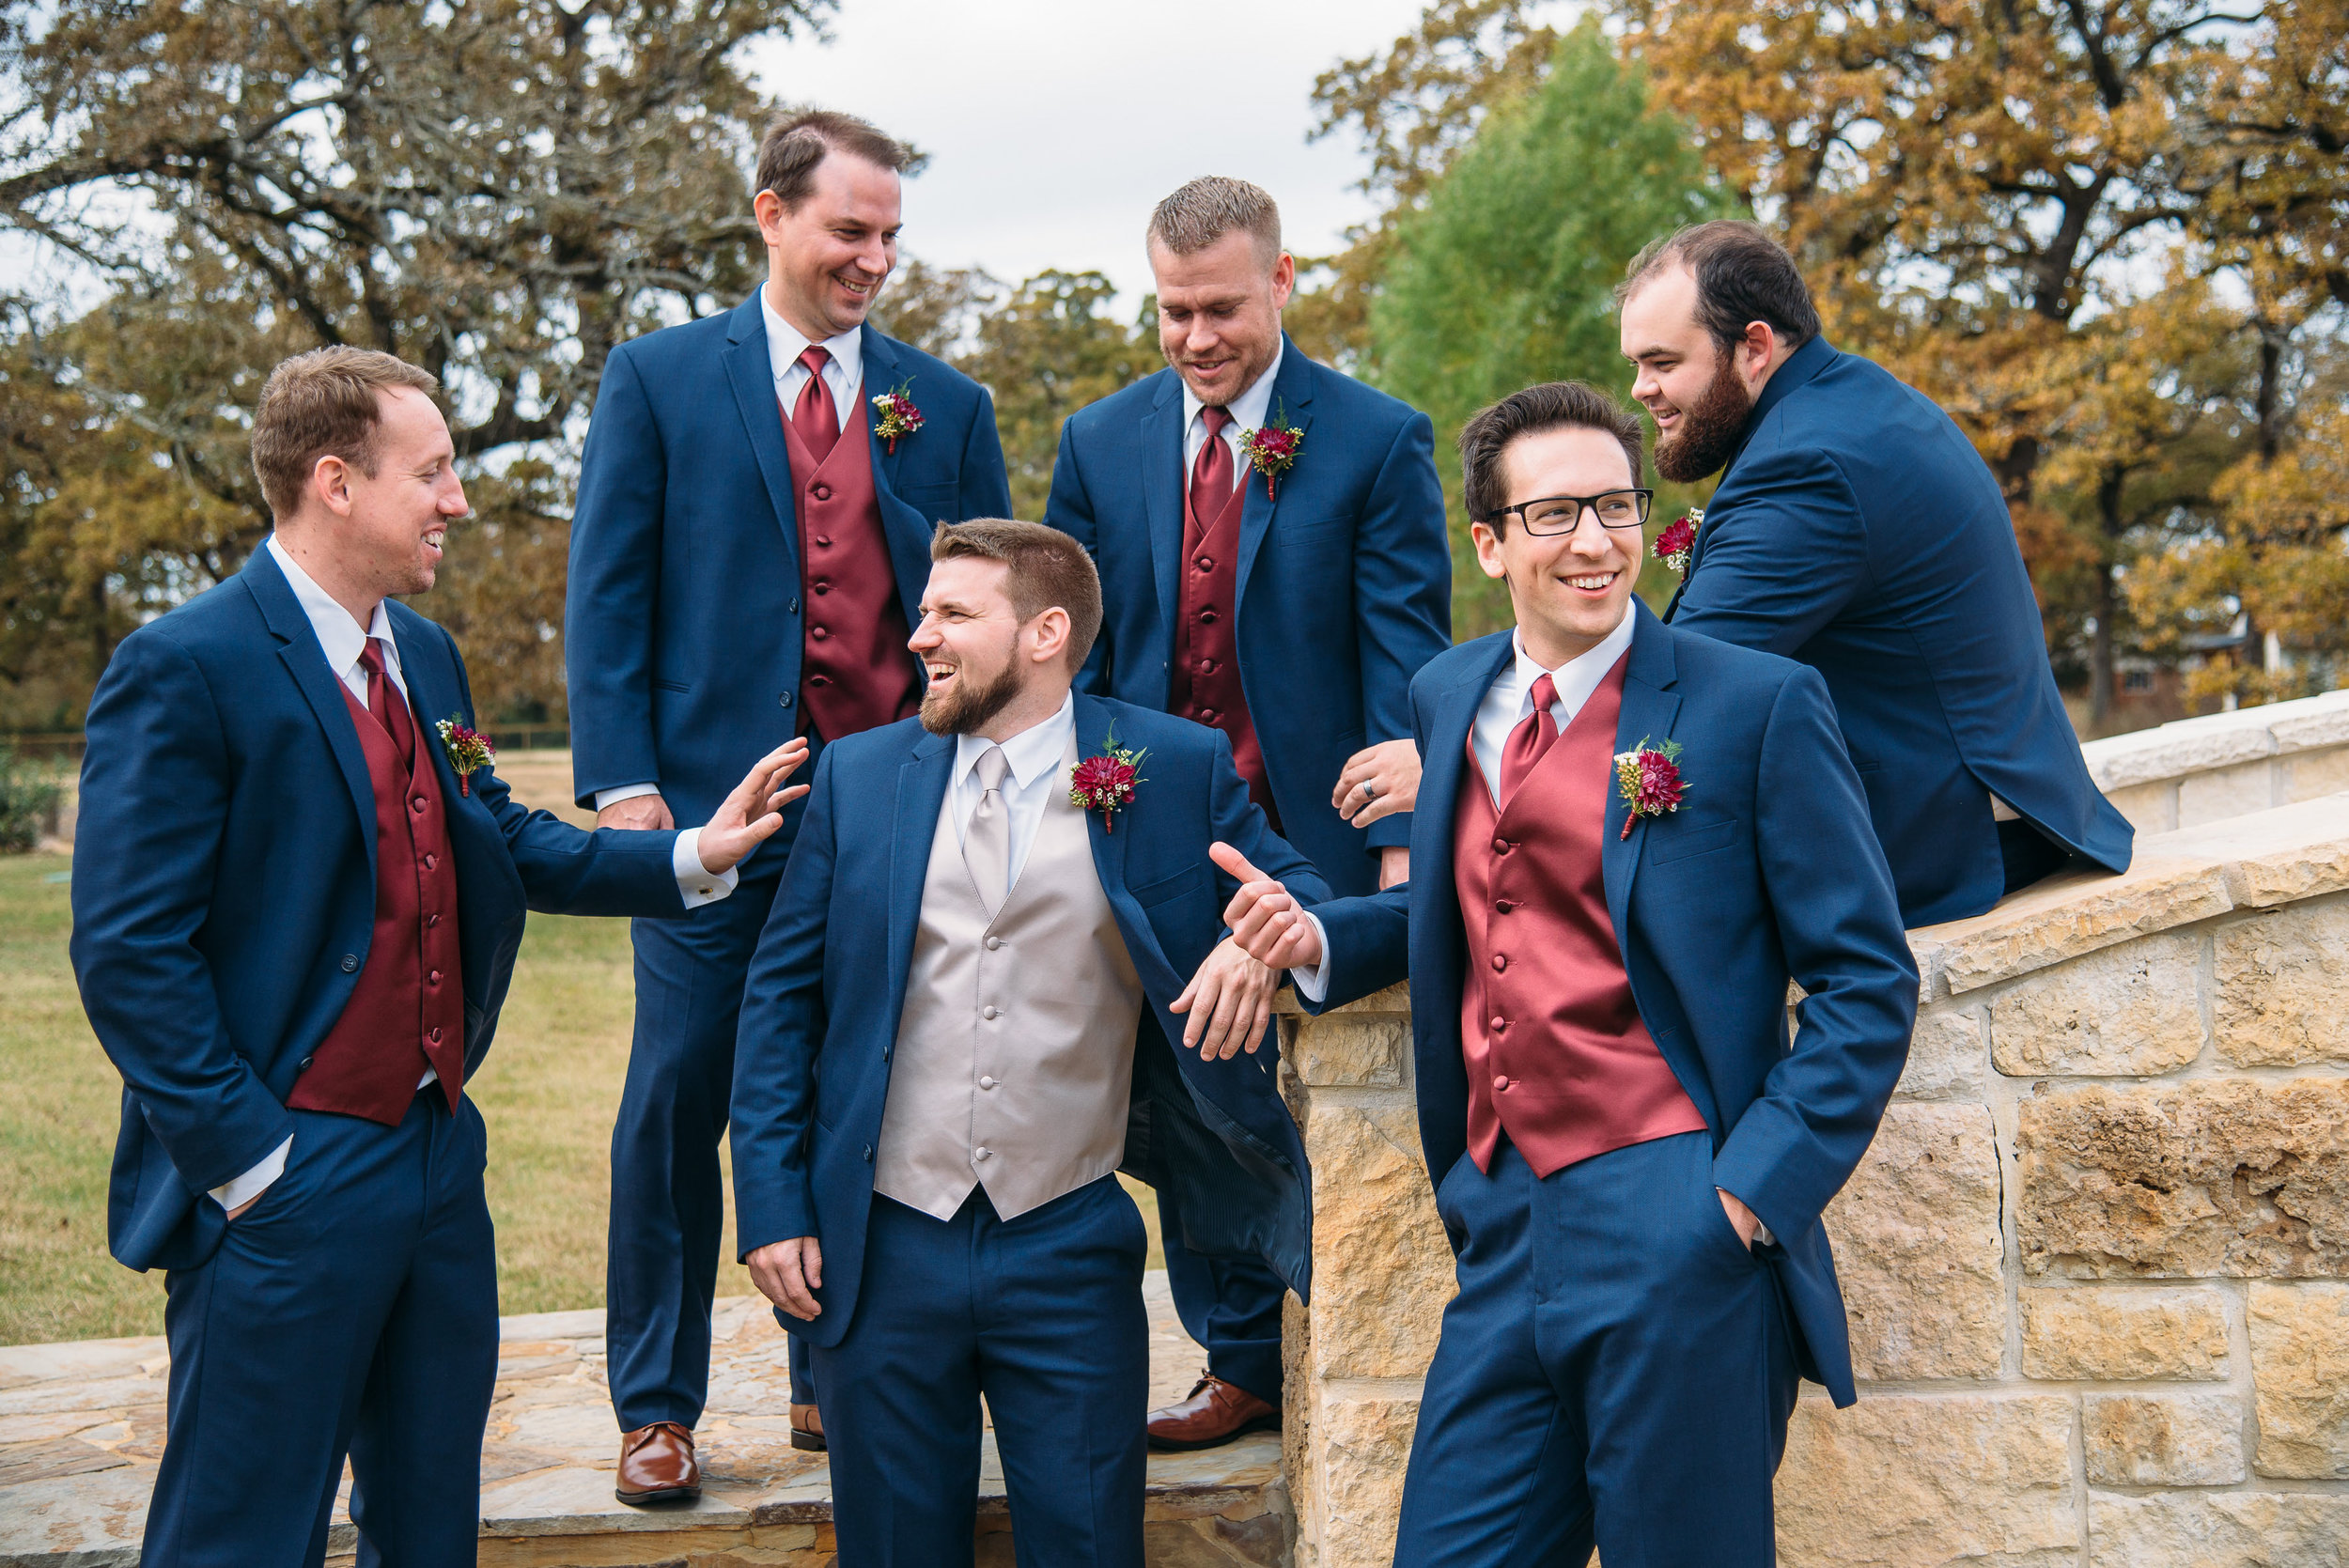 BrownstoneReserve_CollegeStation_WeddingPhotographer_26.jpg